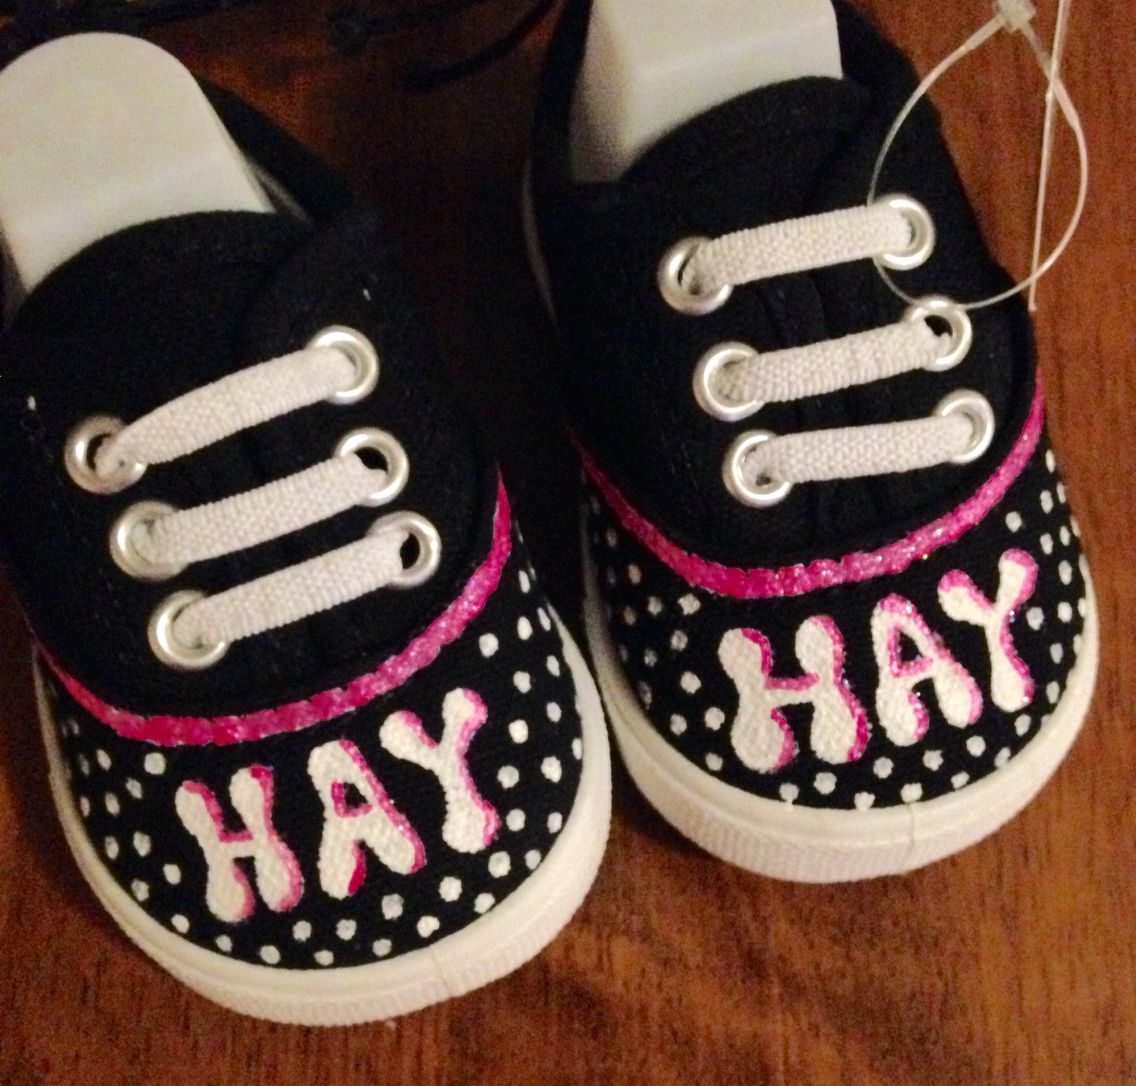 97ac91848d94 Baby girl custom shoes! Affordable prices. Shipping available! Order a pair  of shoes